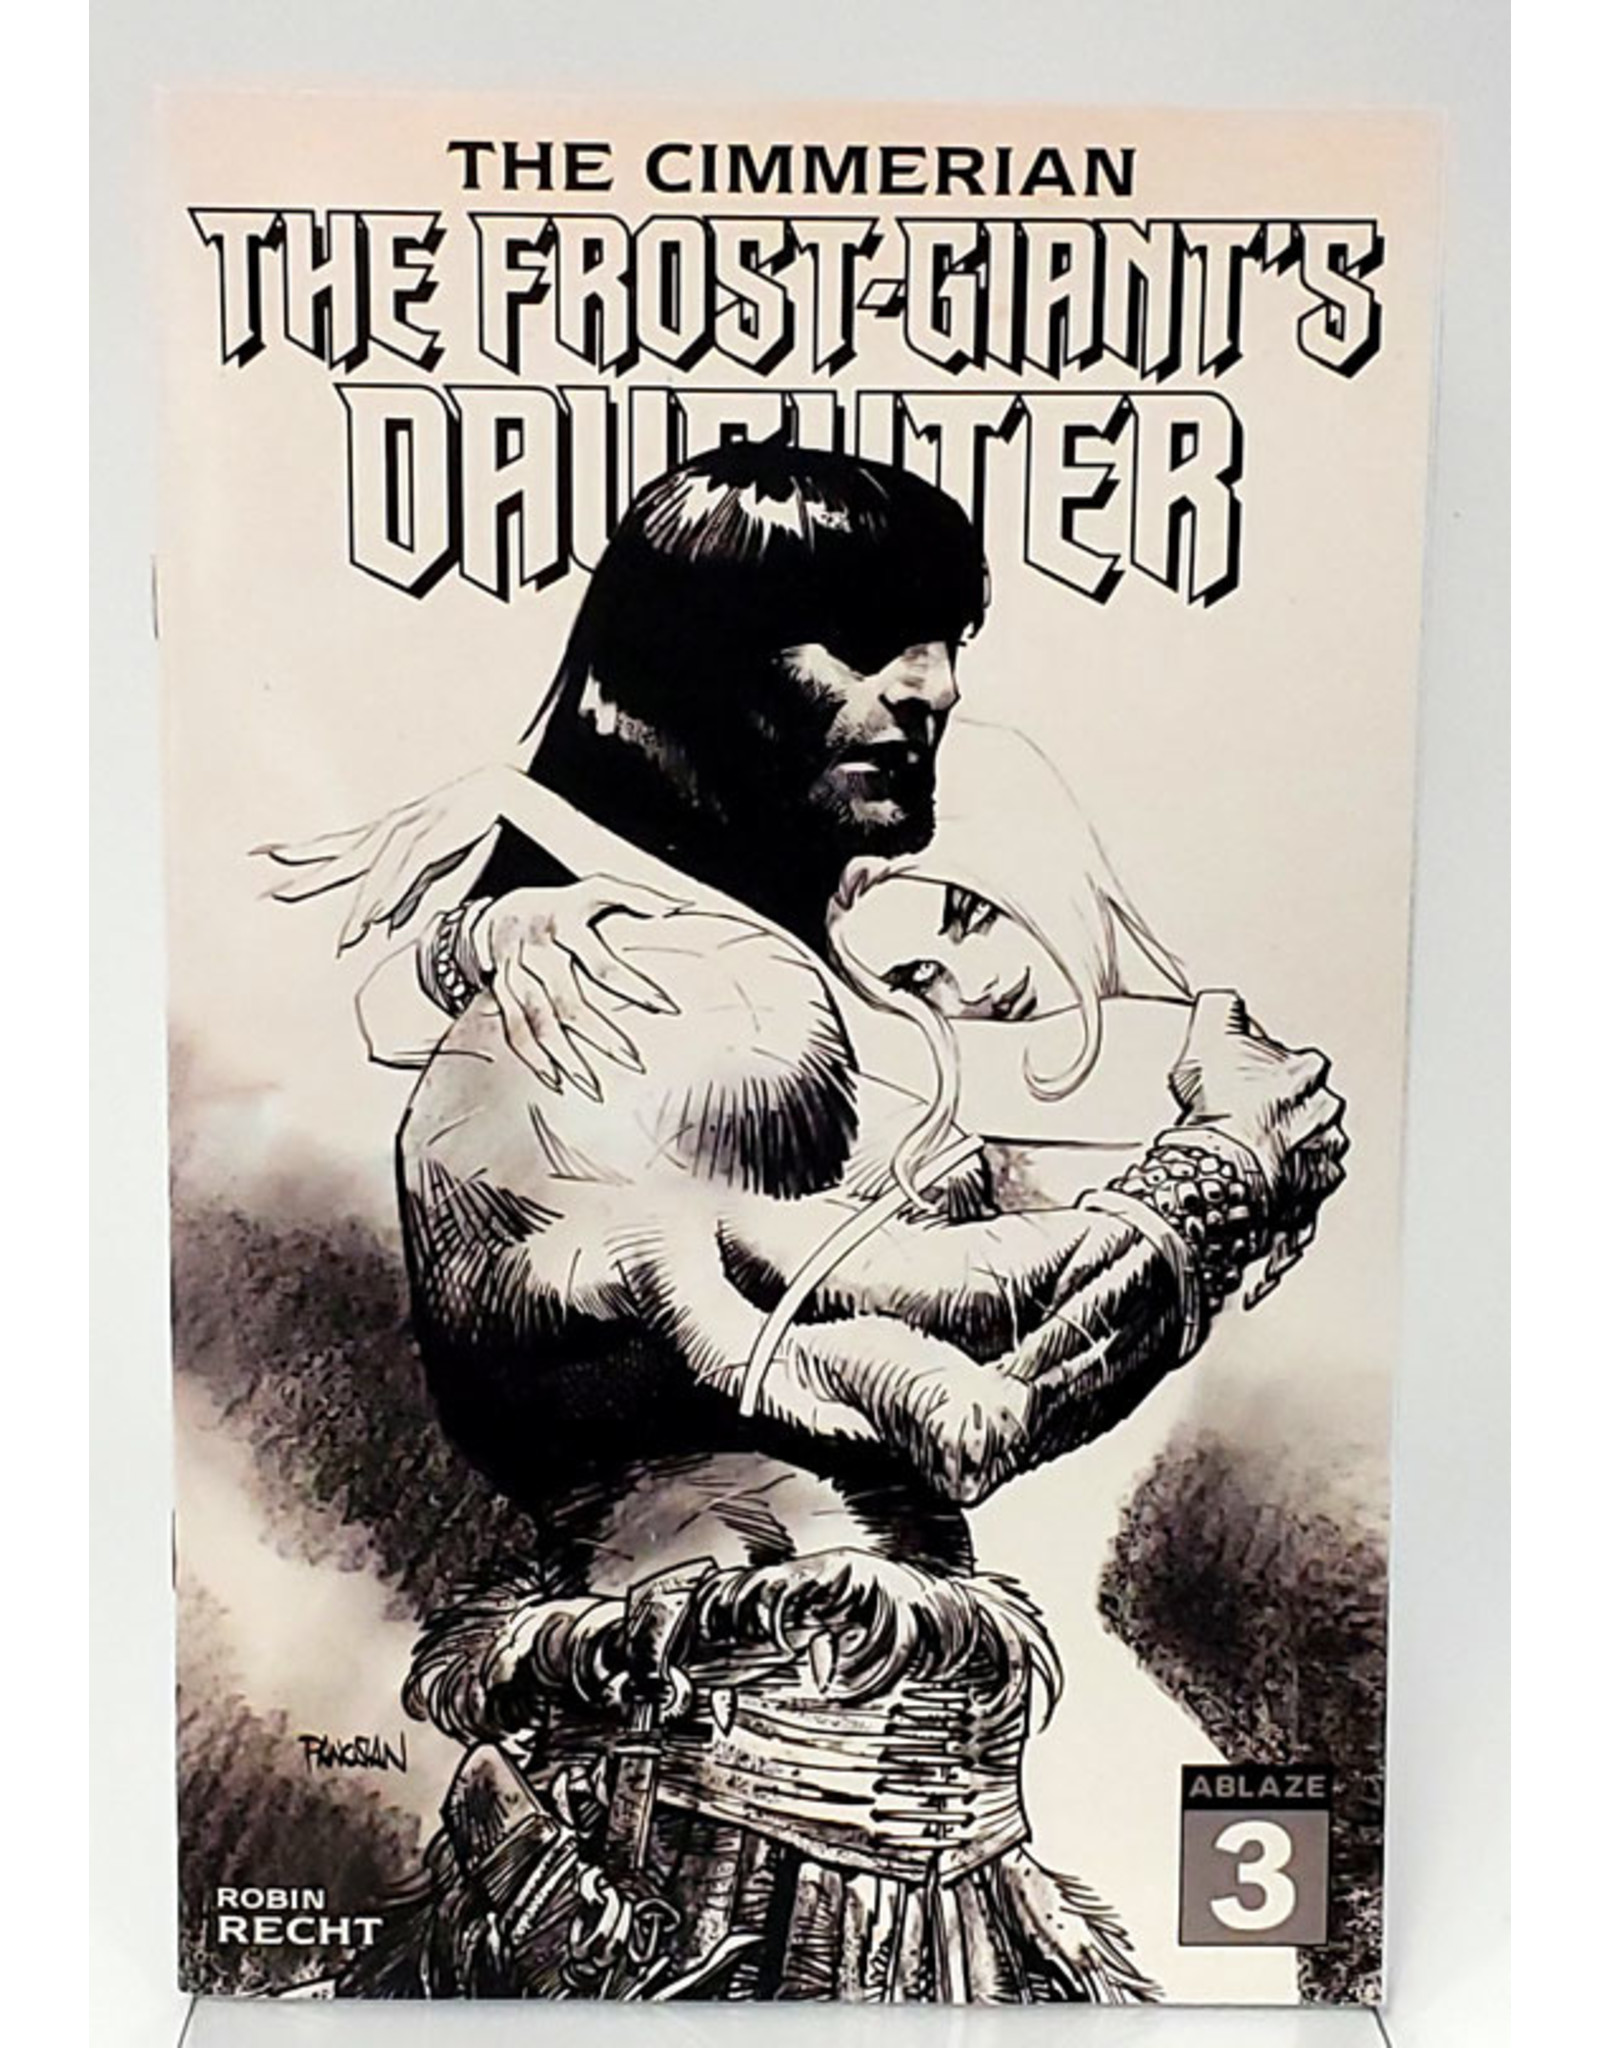 CIMMERIAN FROST GIANTS DAUGHTER #3 1:20 PANOSIAN PENCIL A